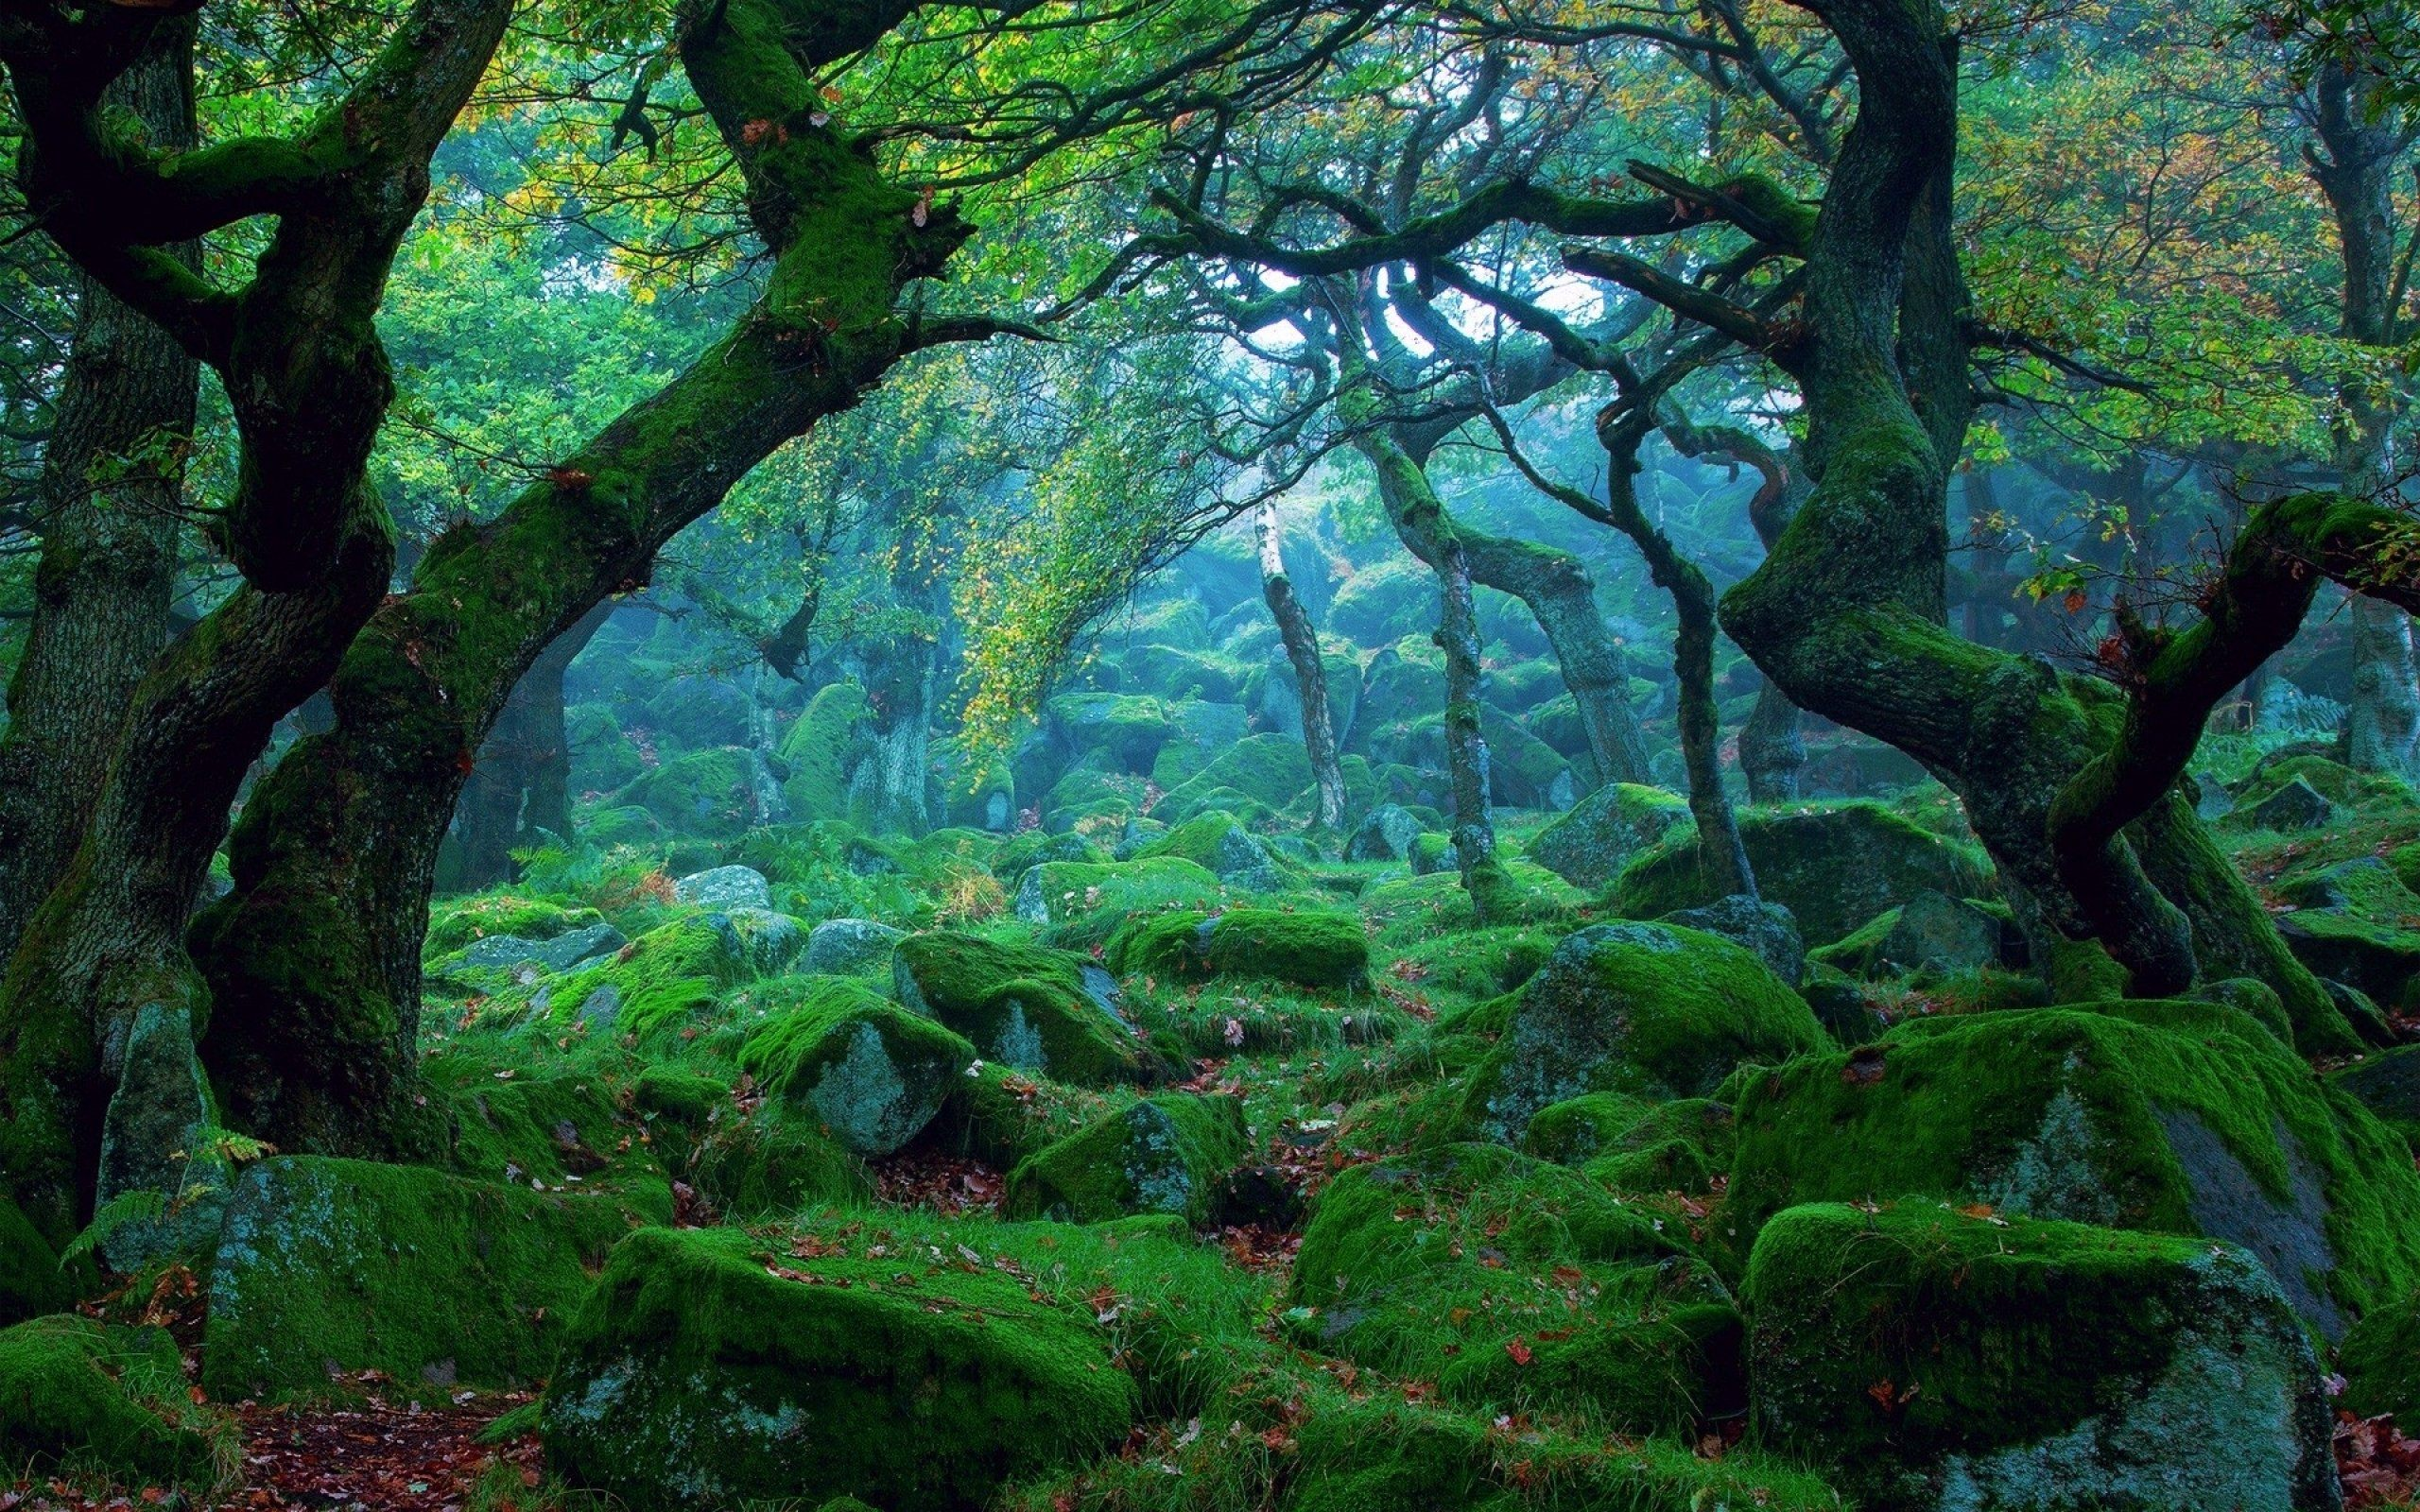 Green Stones and Forest Landscape wallpapers